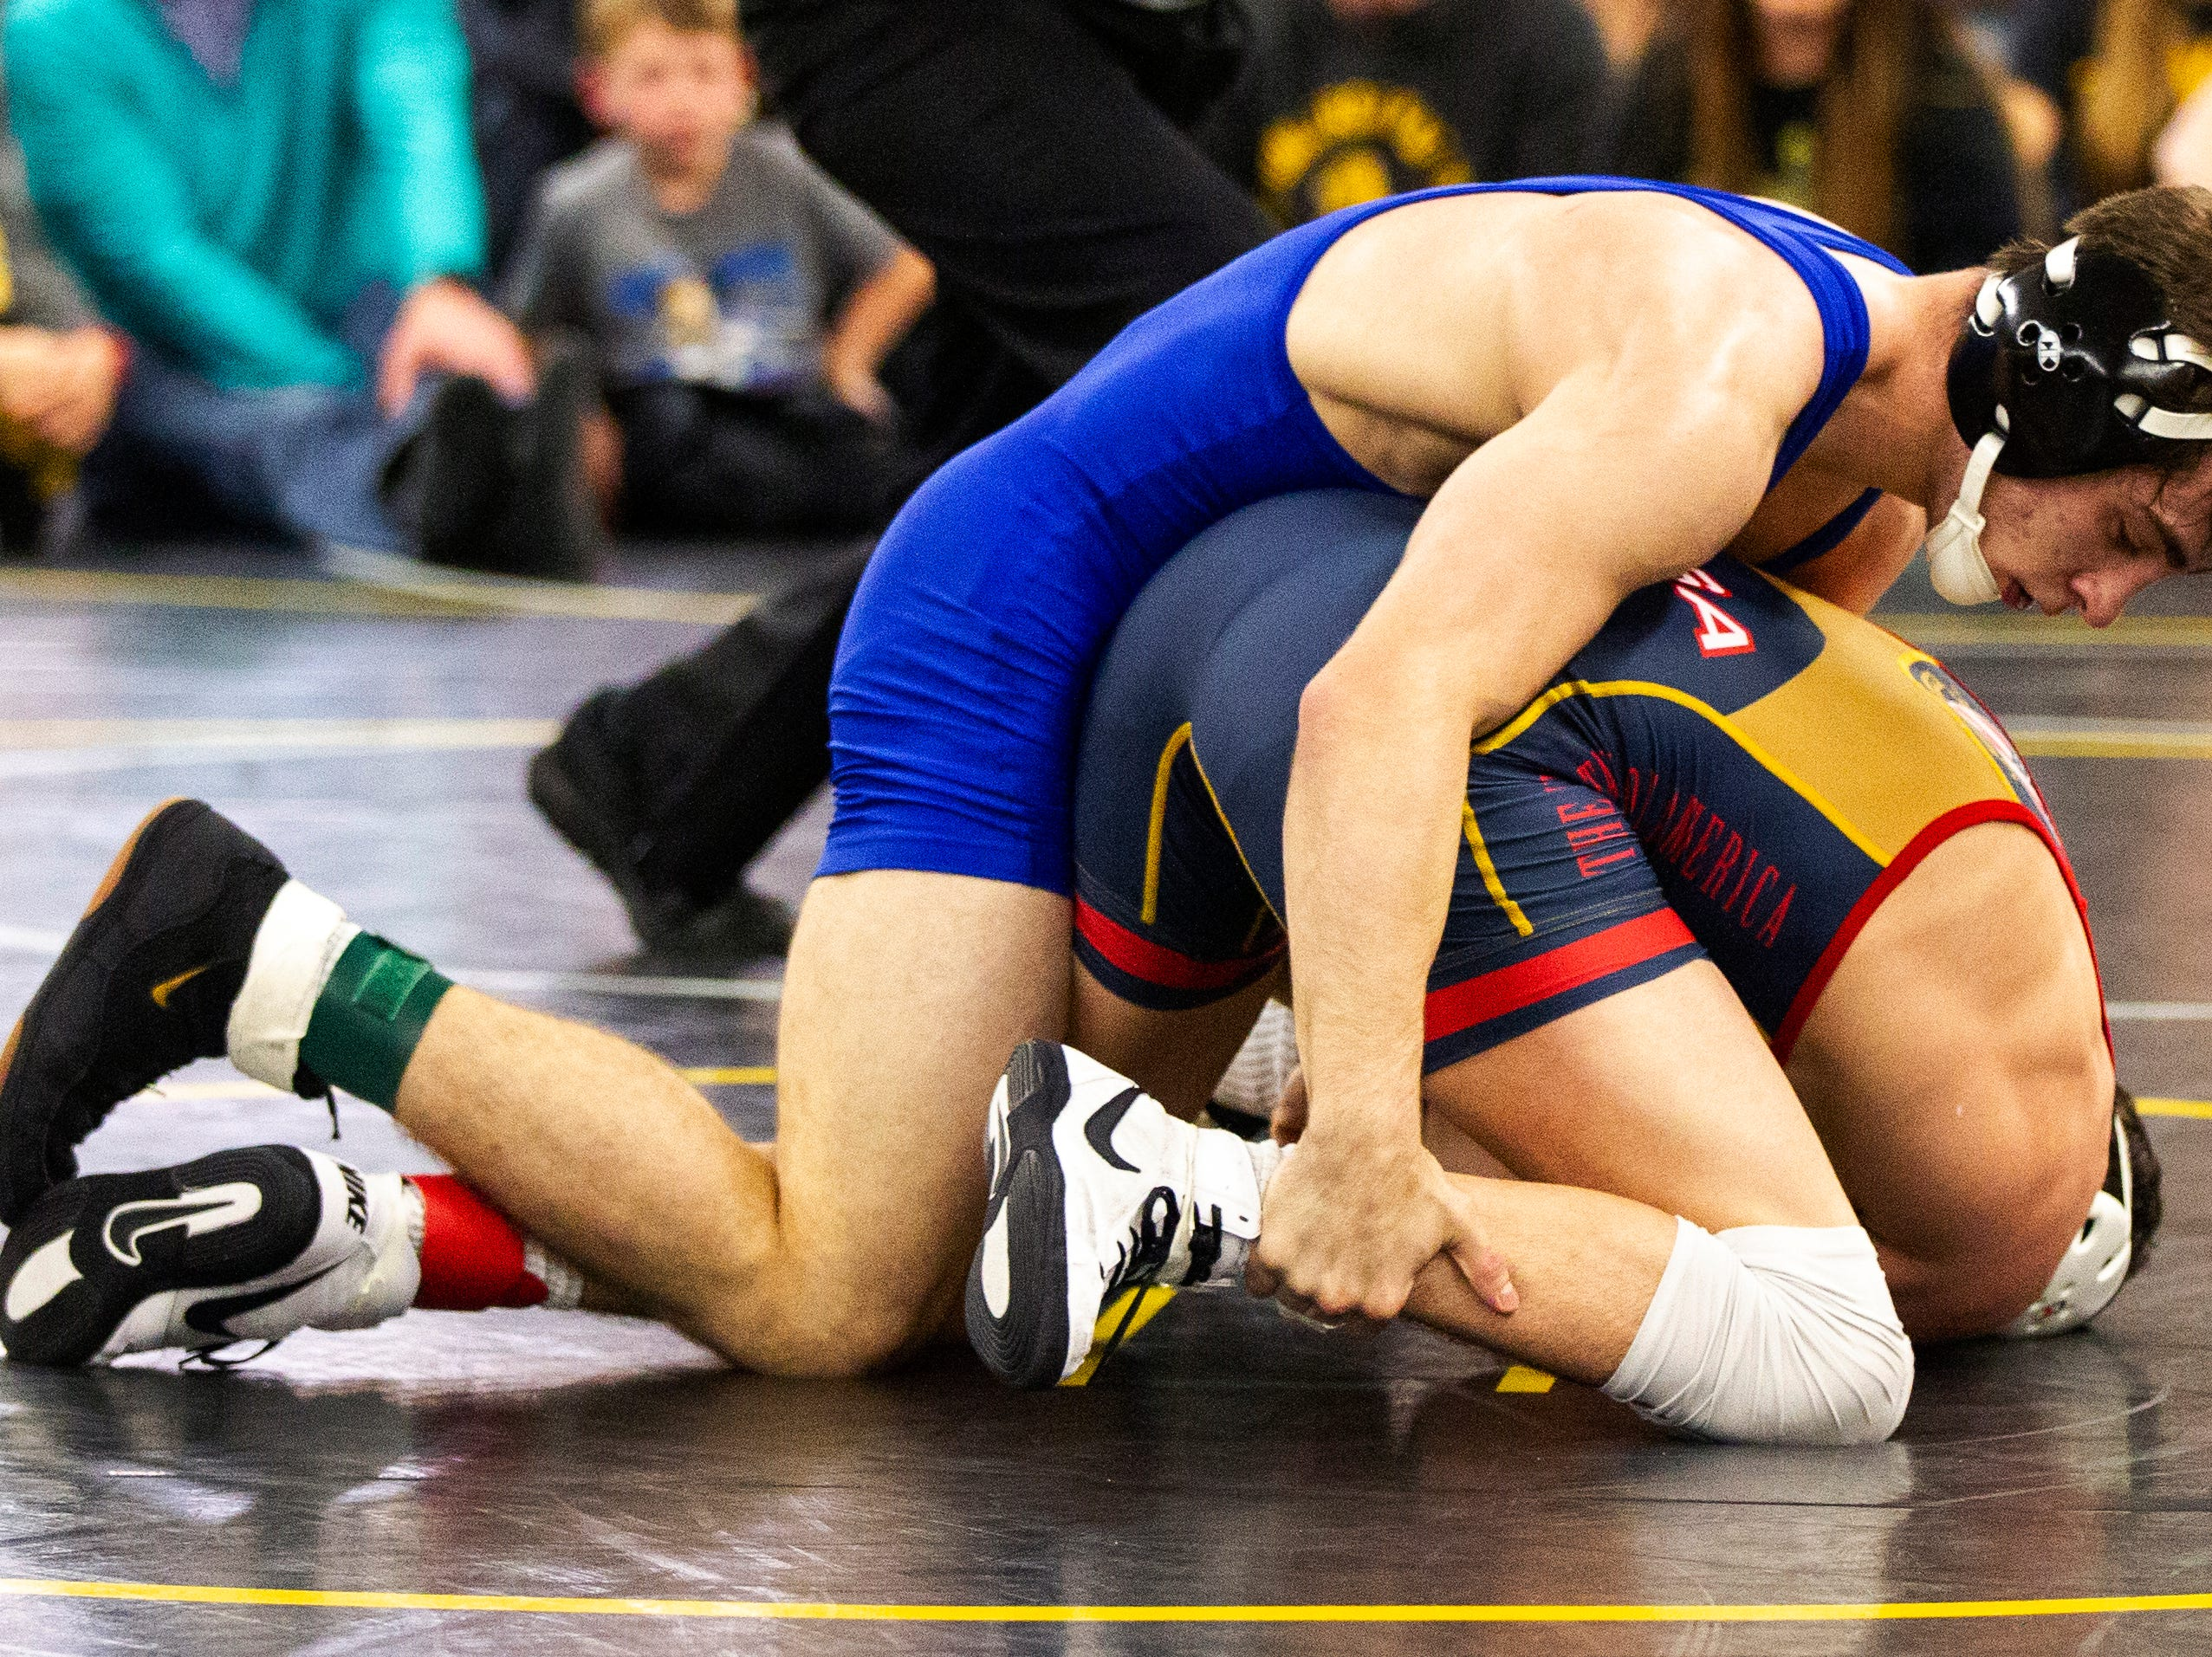 Iowa's Austin DeSanto (blue) wrestles Paul Glynn at 133 during the wrestle-offs on Friday, Nov. 2, 2018, inside the Dan Gable Wrestling Complex at Carver-Hawkeye Arena in Iowa City.